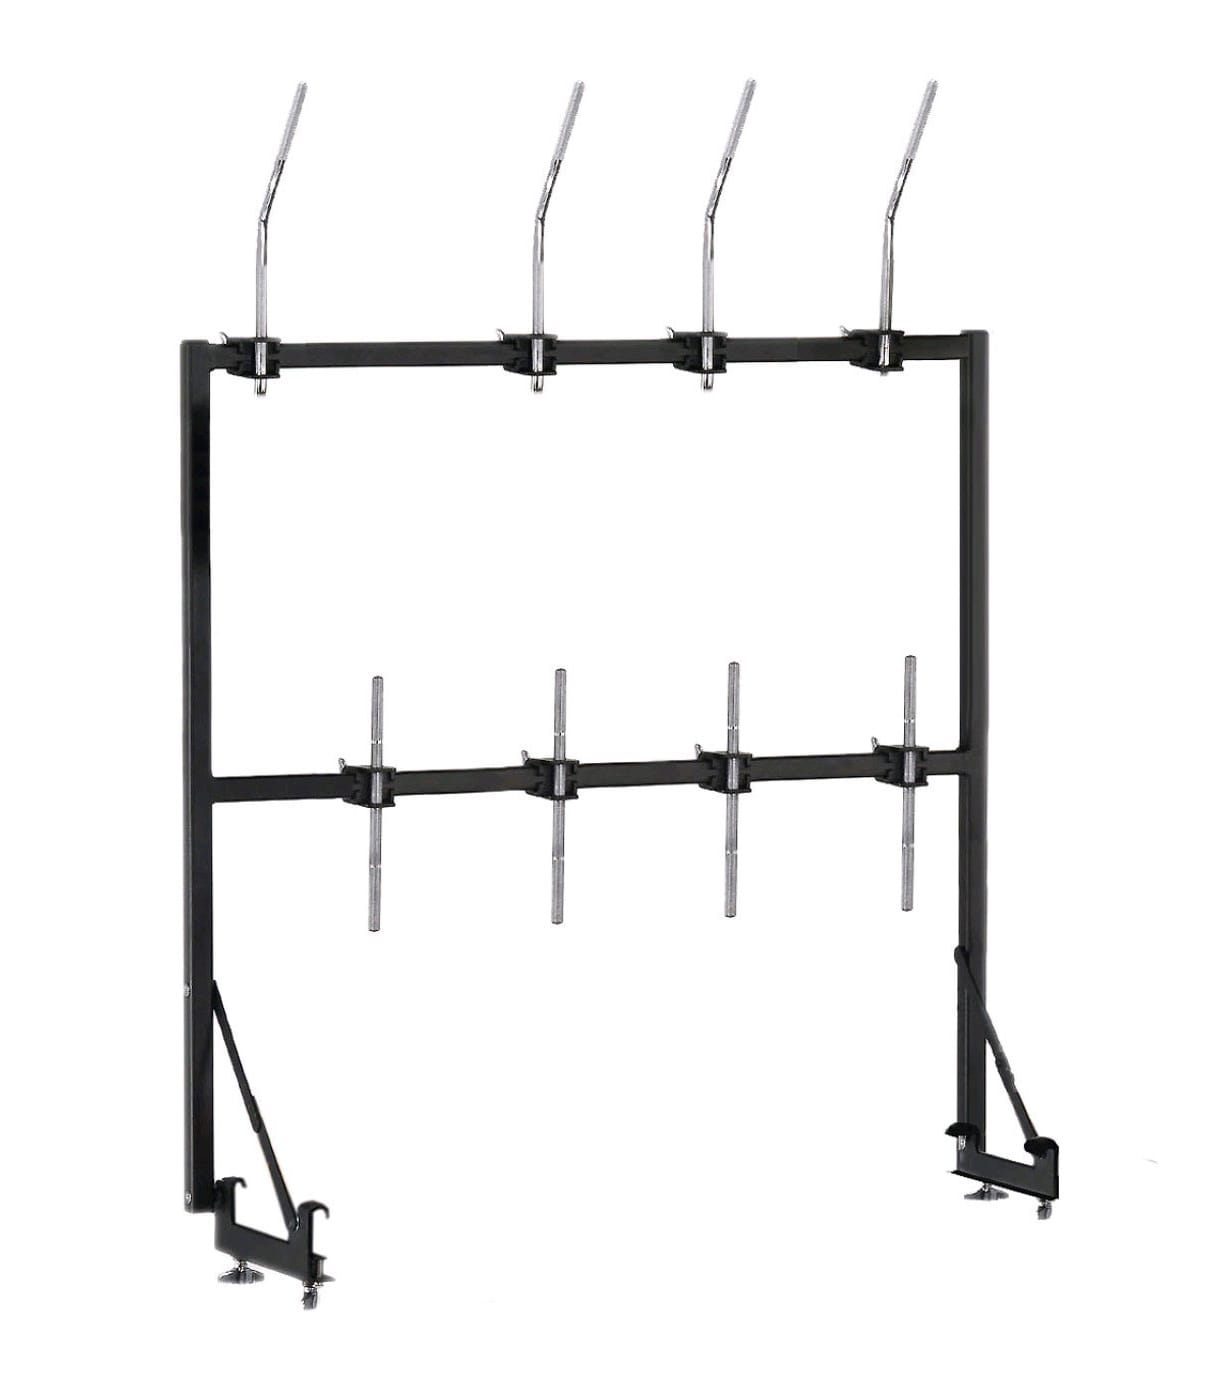 Buy pearl - PTR 1824 Perc Rack Add On for PTT1824 w Stabilizer